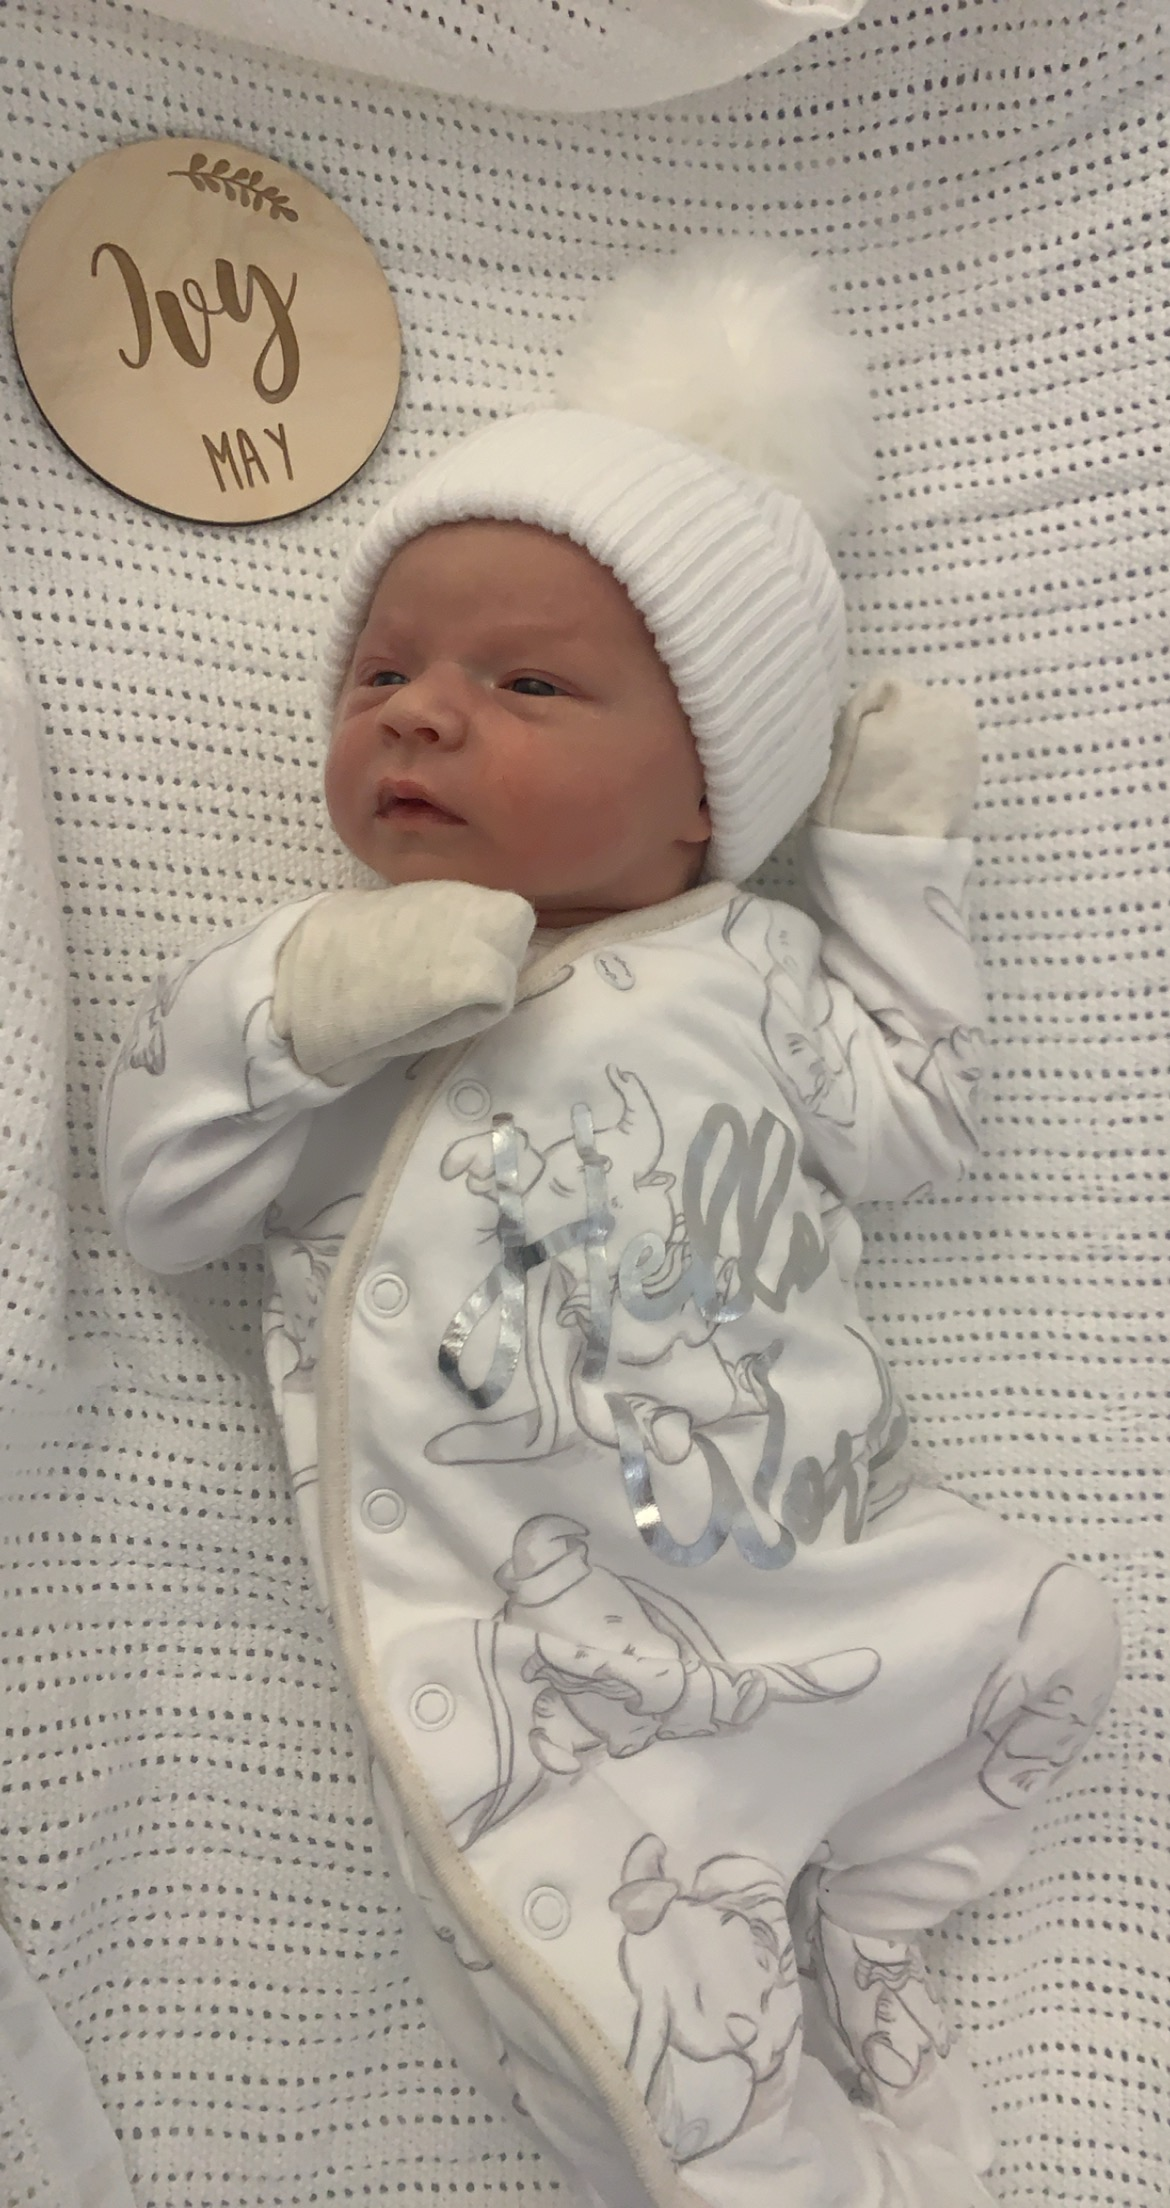 St Helens Star: Ivy May Hughes from Thatto Heath. Born on 01.10.2020 at 12:29pm, Weighing 6lb 15oz